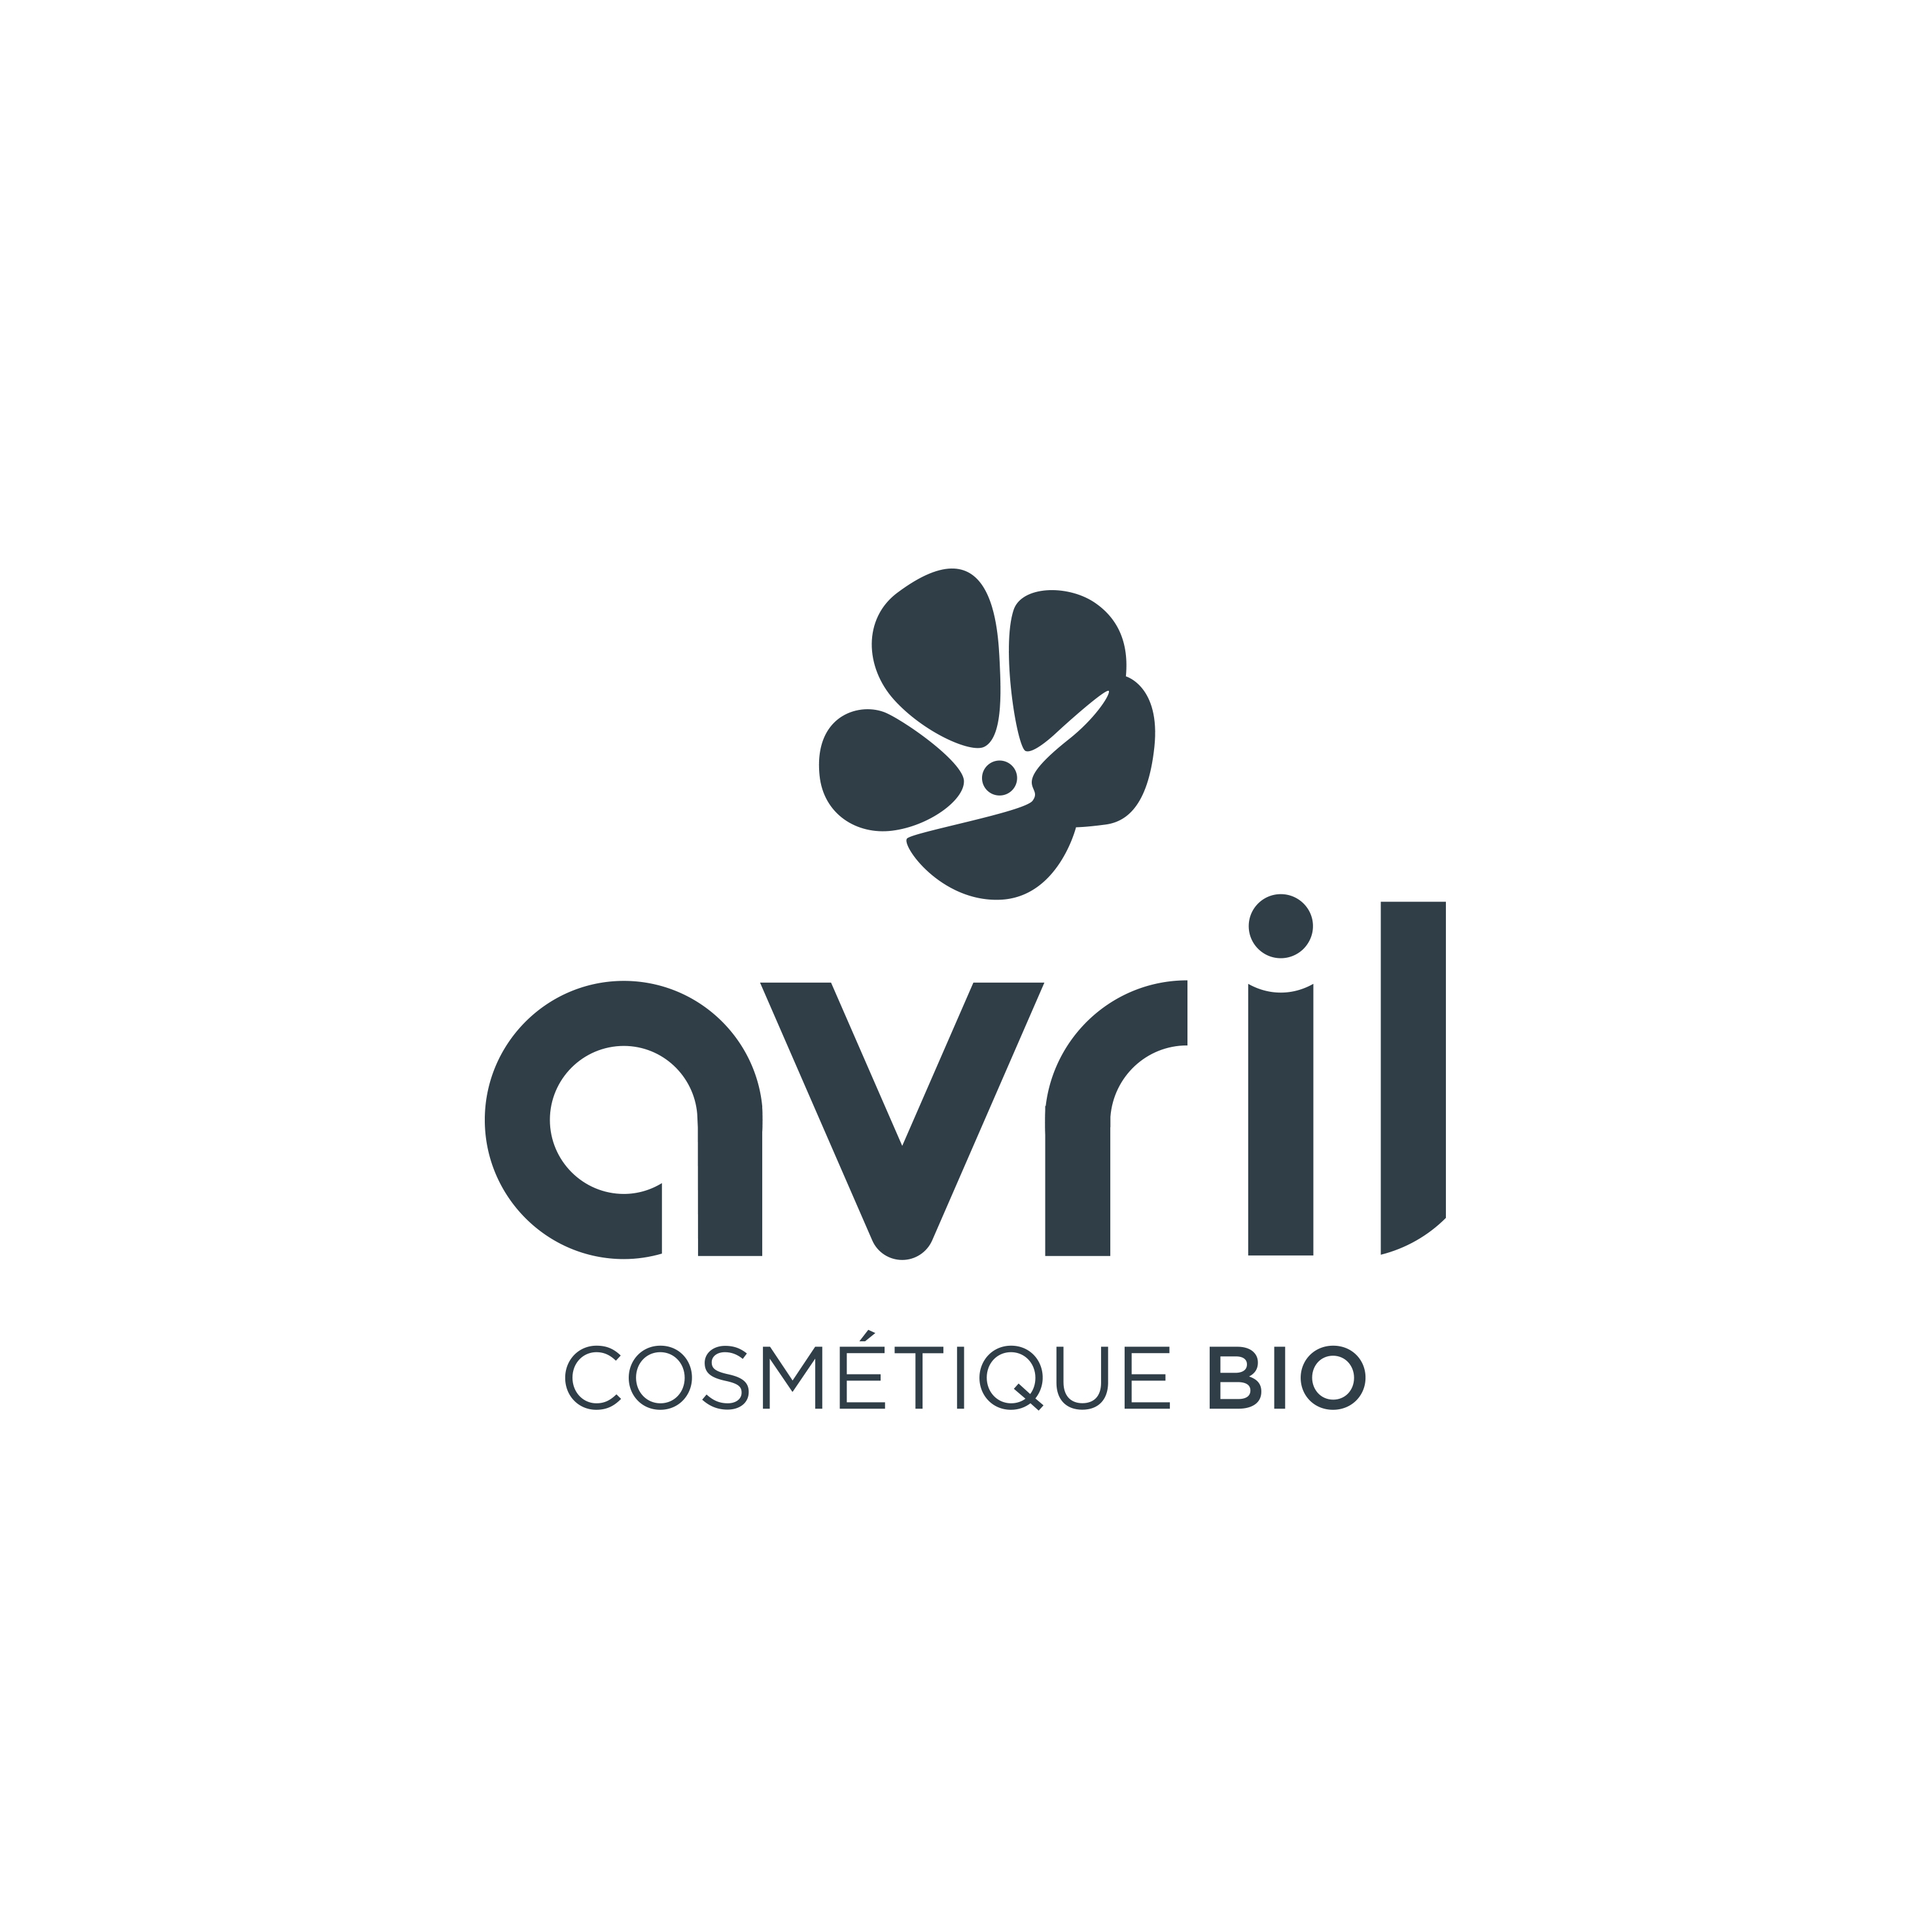 183/Spa/Logo_avril_baseline_cosmetique_bio.jpg